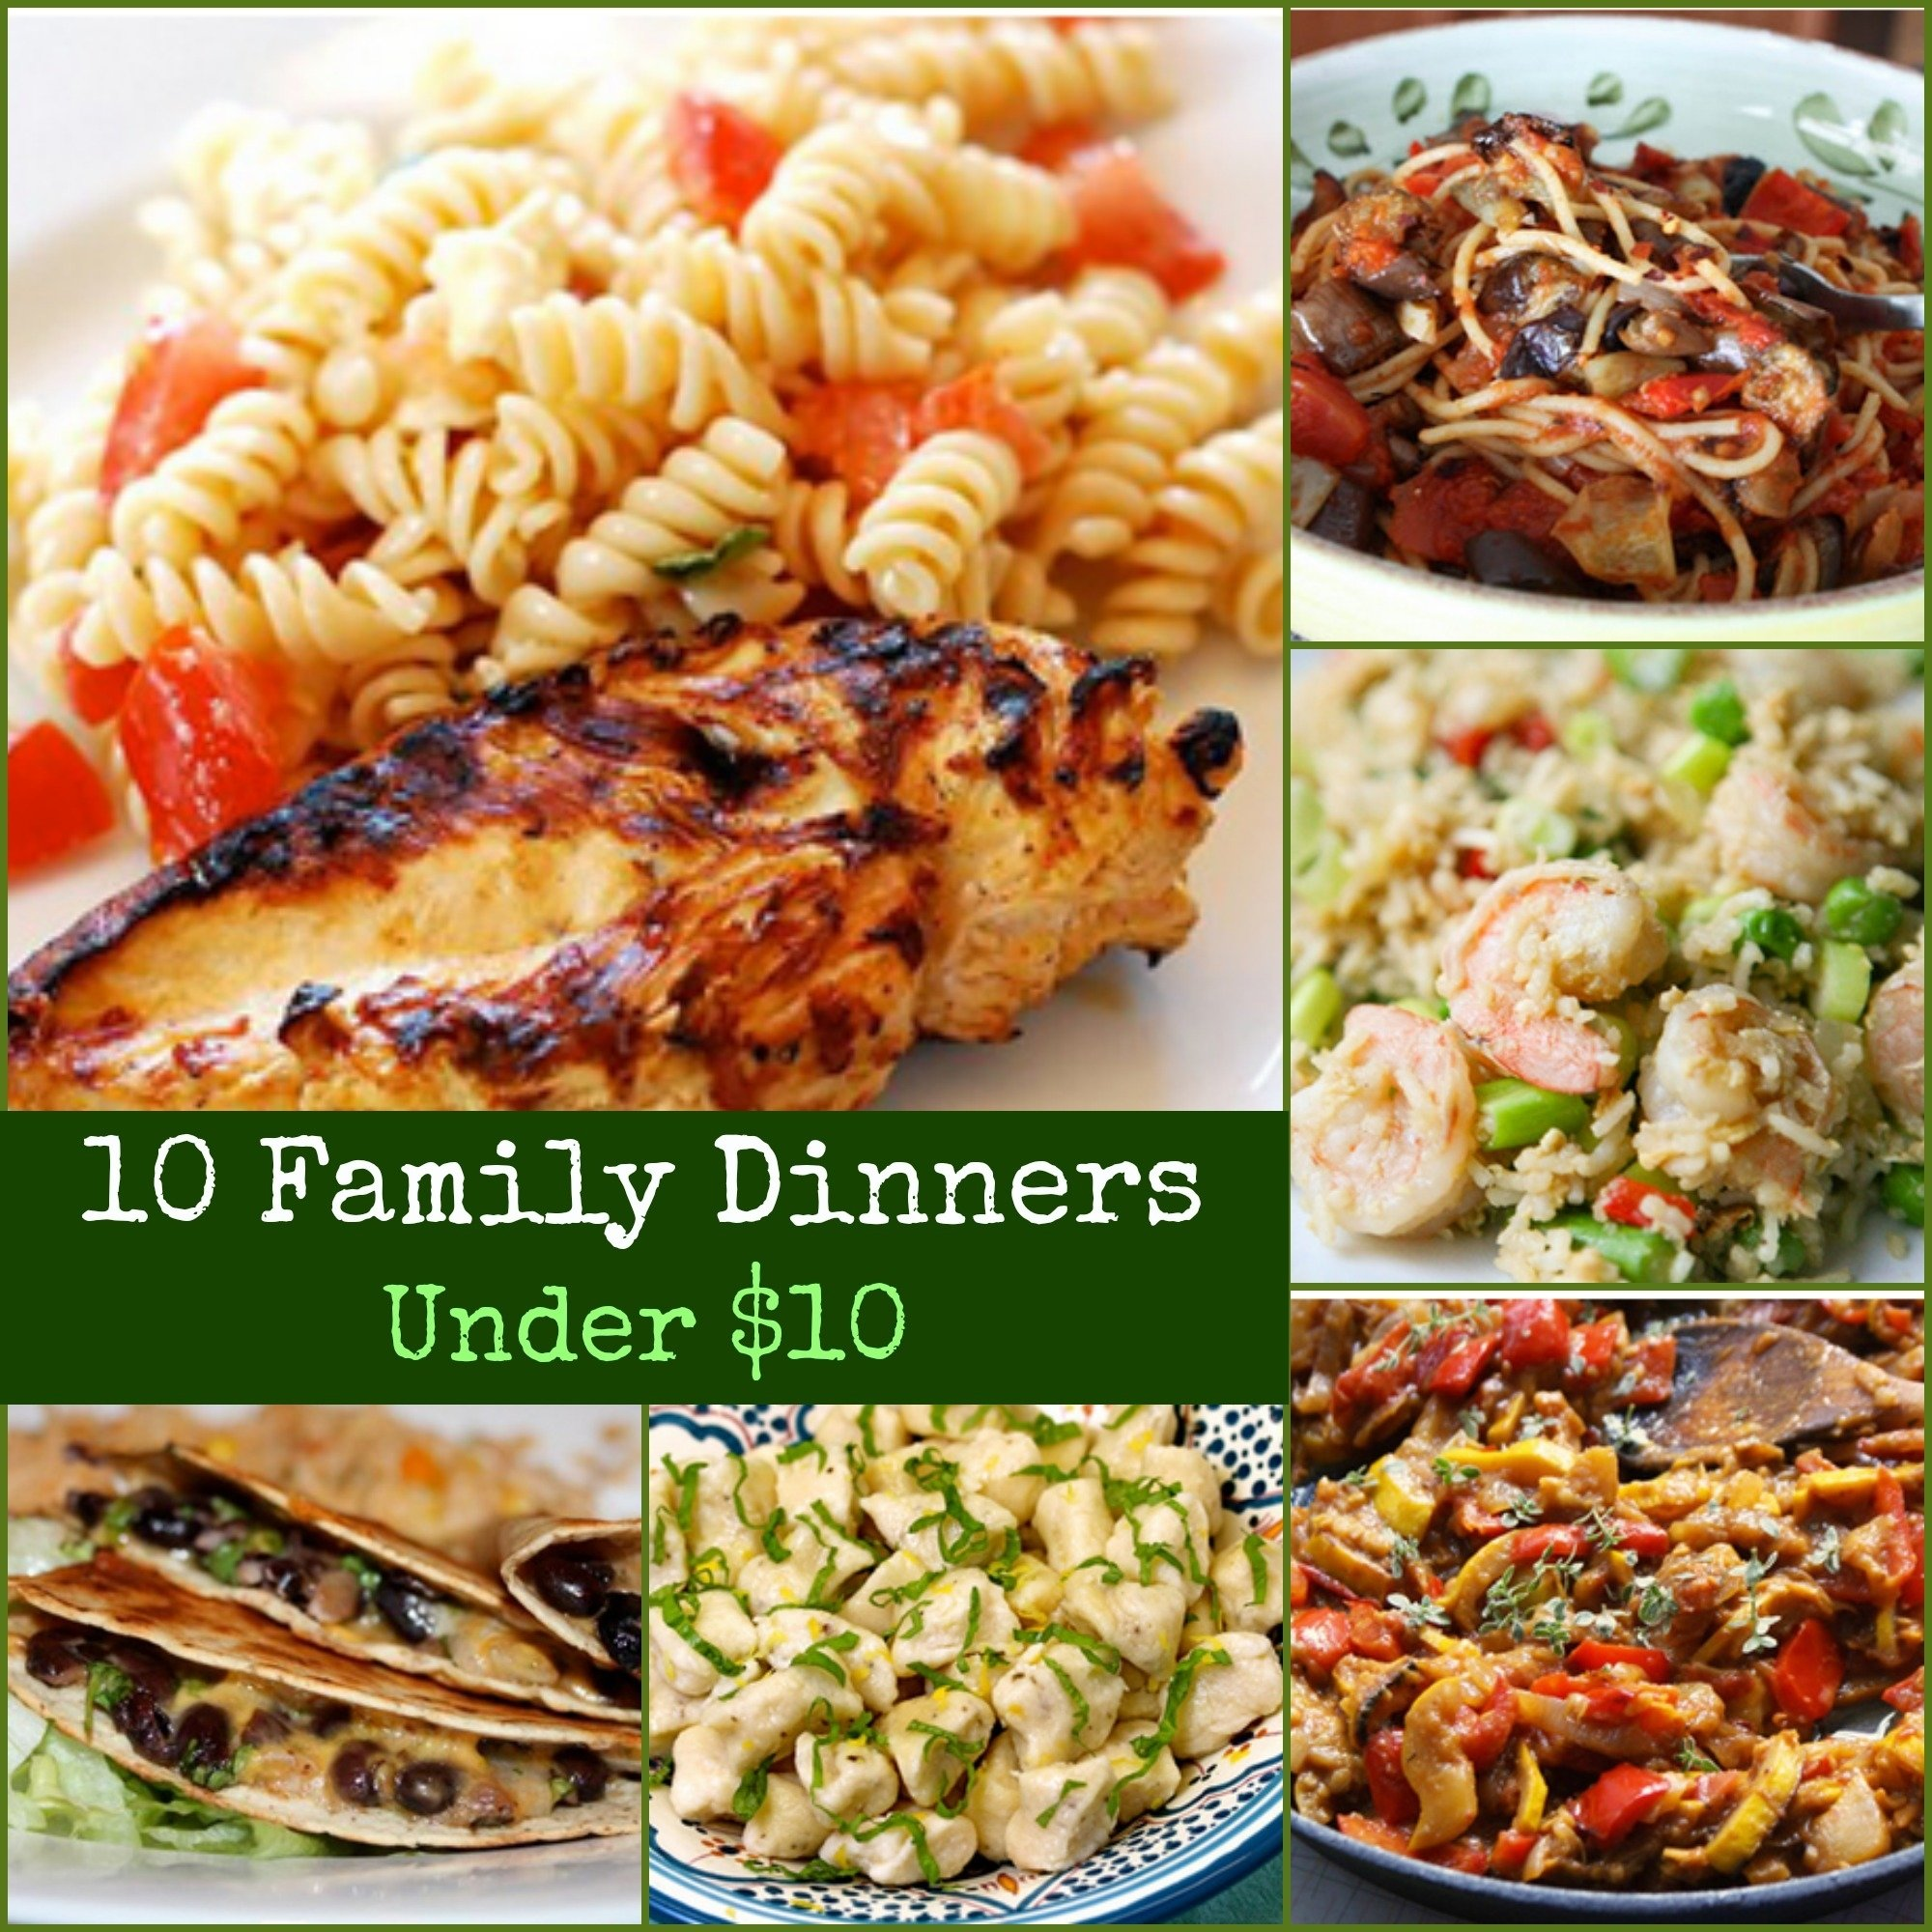 10 Nice Dinner Ideas For Family Of 4 download quick easy recipes for dinner for the family food photos 6 2020